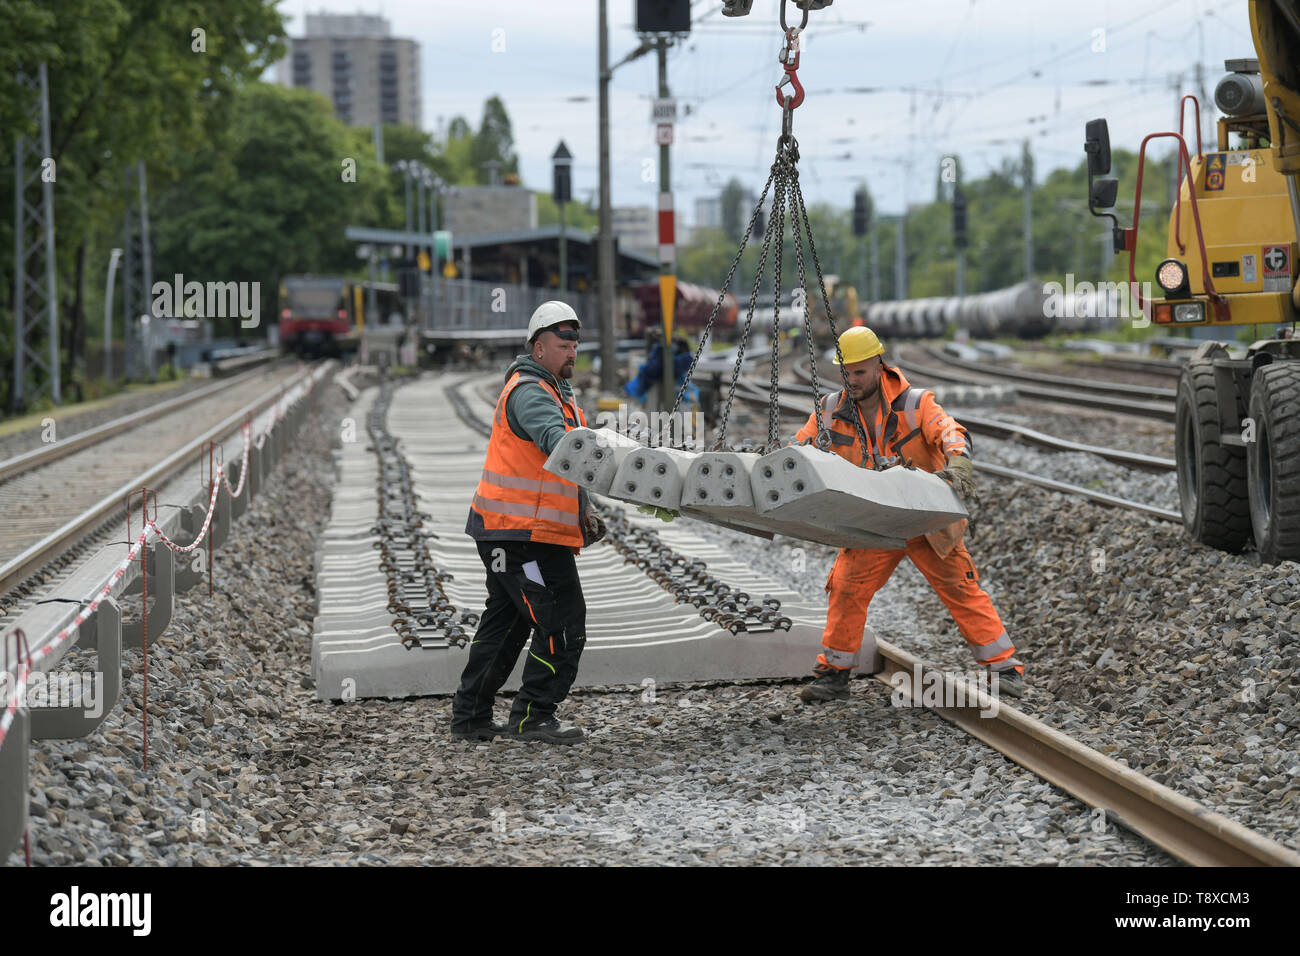 Berlin, Germany. 15th May, 2019. View of the construction work on the eastern Berlin S-Bahn ring between Greifswalder Straße and Prenzlauer Allee. Since 8 April 2019, travellers have had to live with considerable restrictions. The work is to be completed on time on 20 May 2019. Credit: Jörg Carstensen/dpa/Alamy Live News - Stock Image